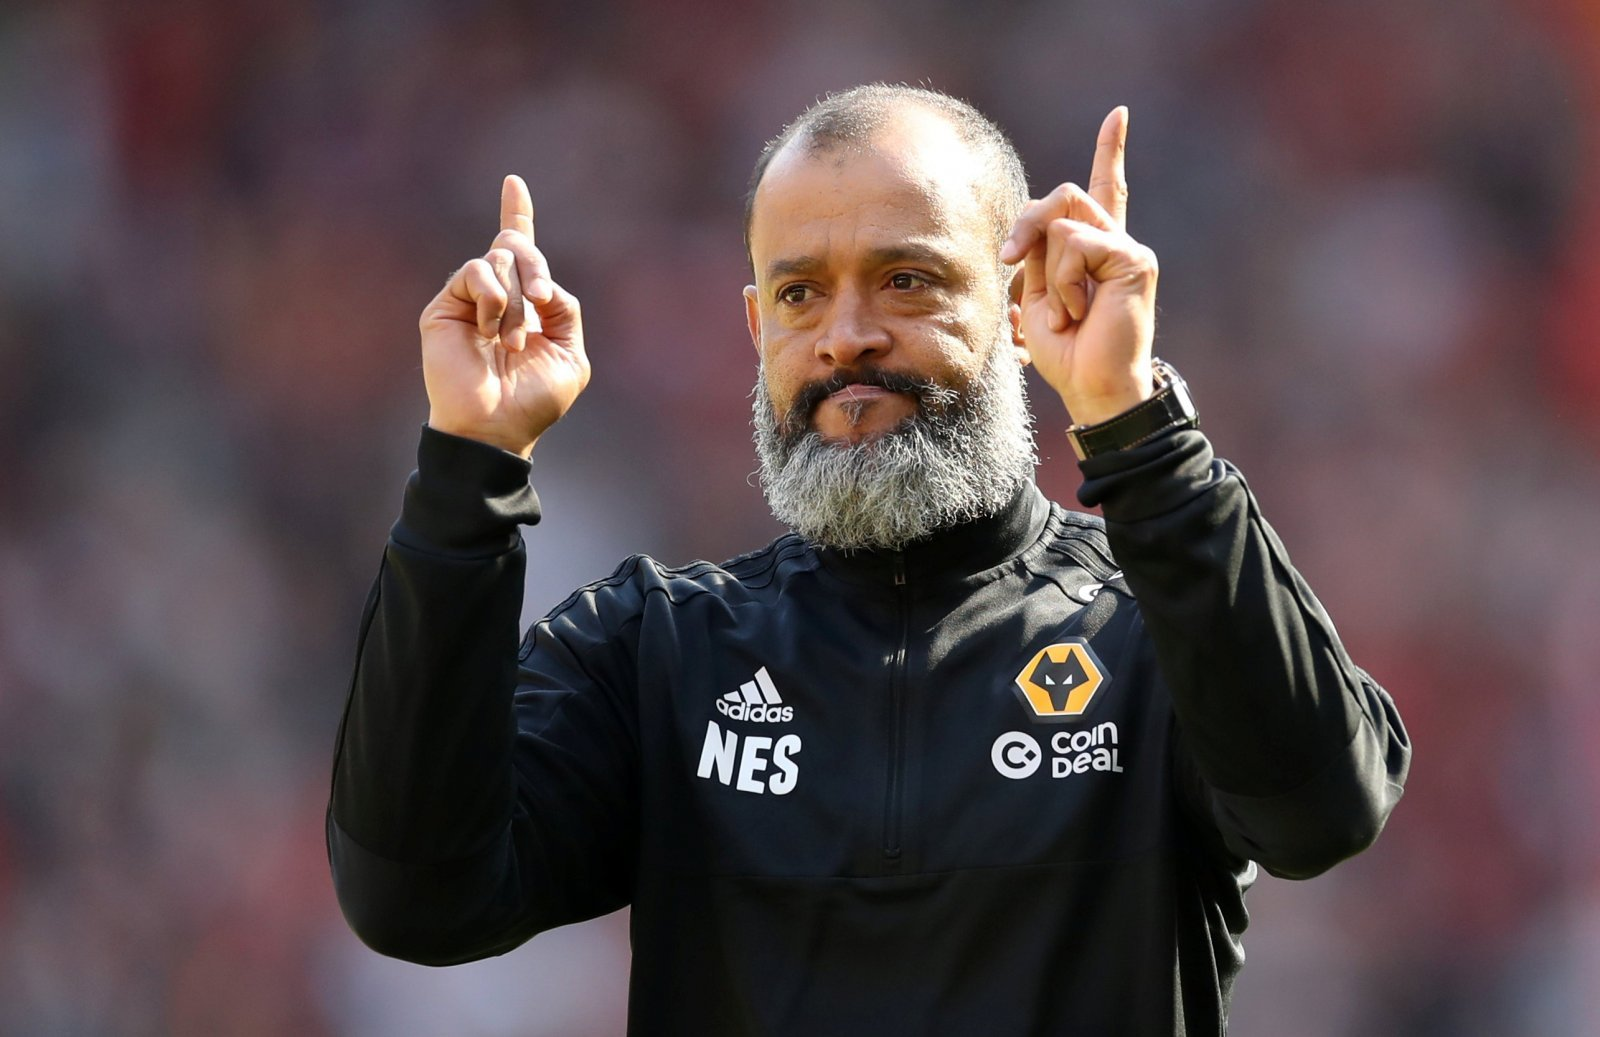 Wolves: Plenty of fans loved Nuno Espírito Santo's passion following West Ham victory